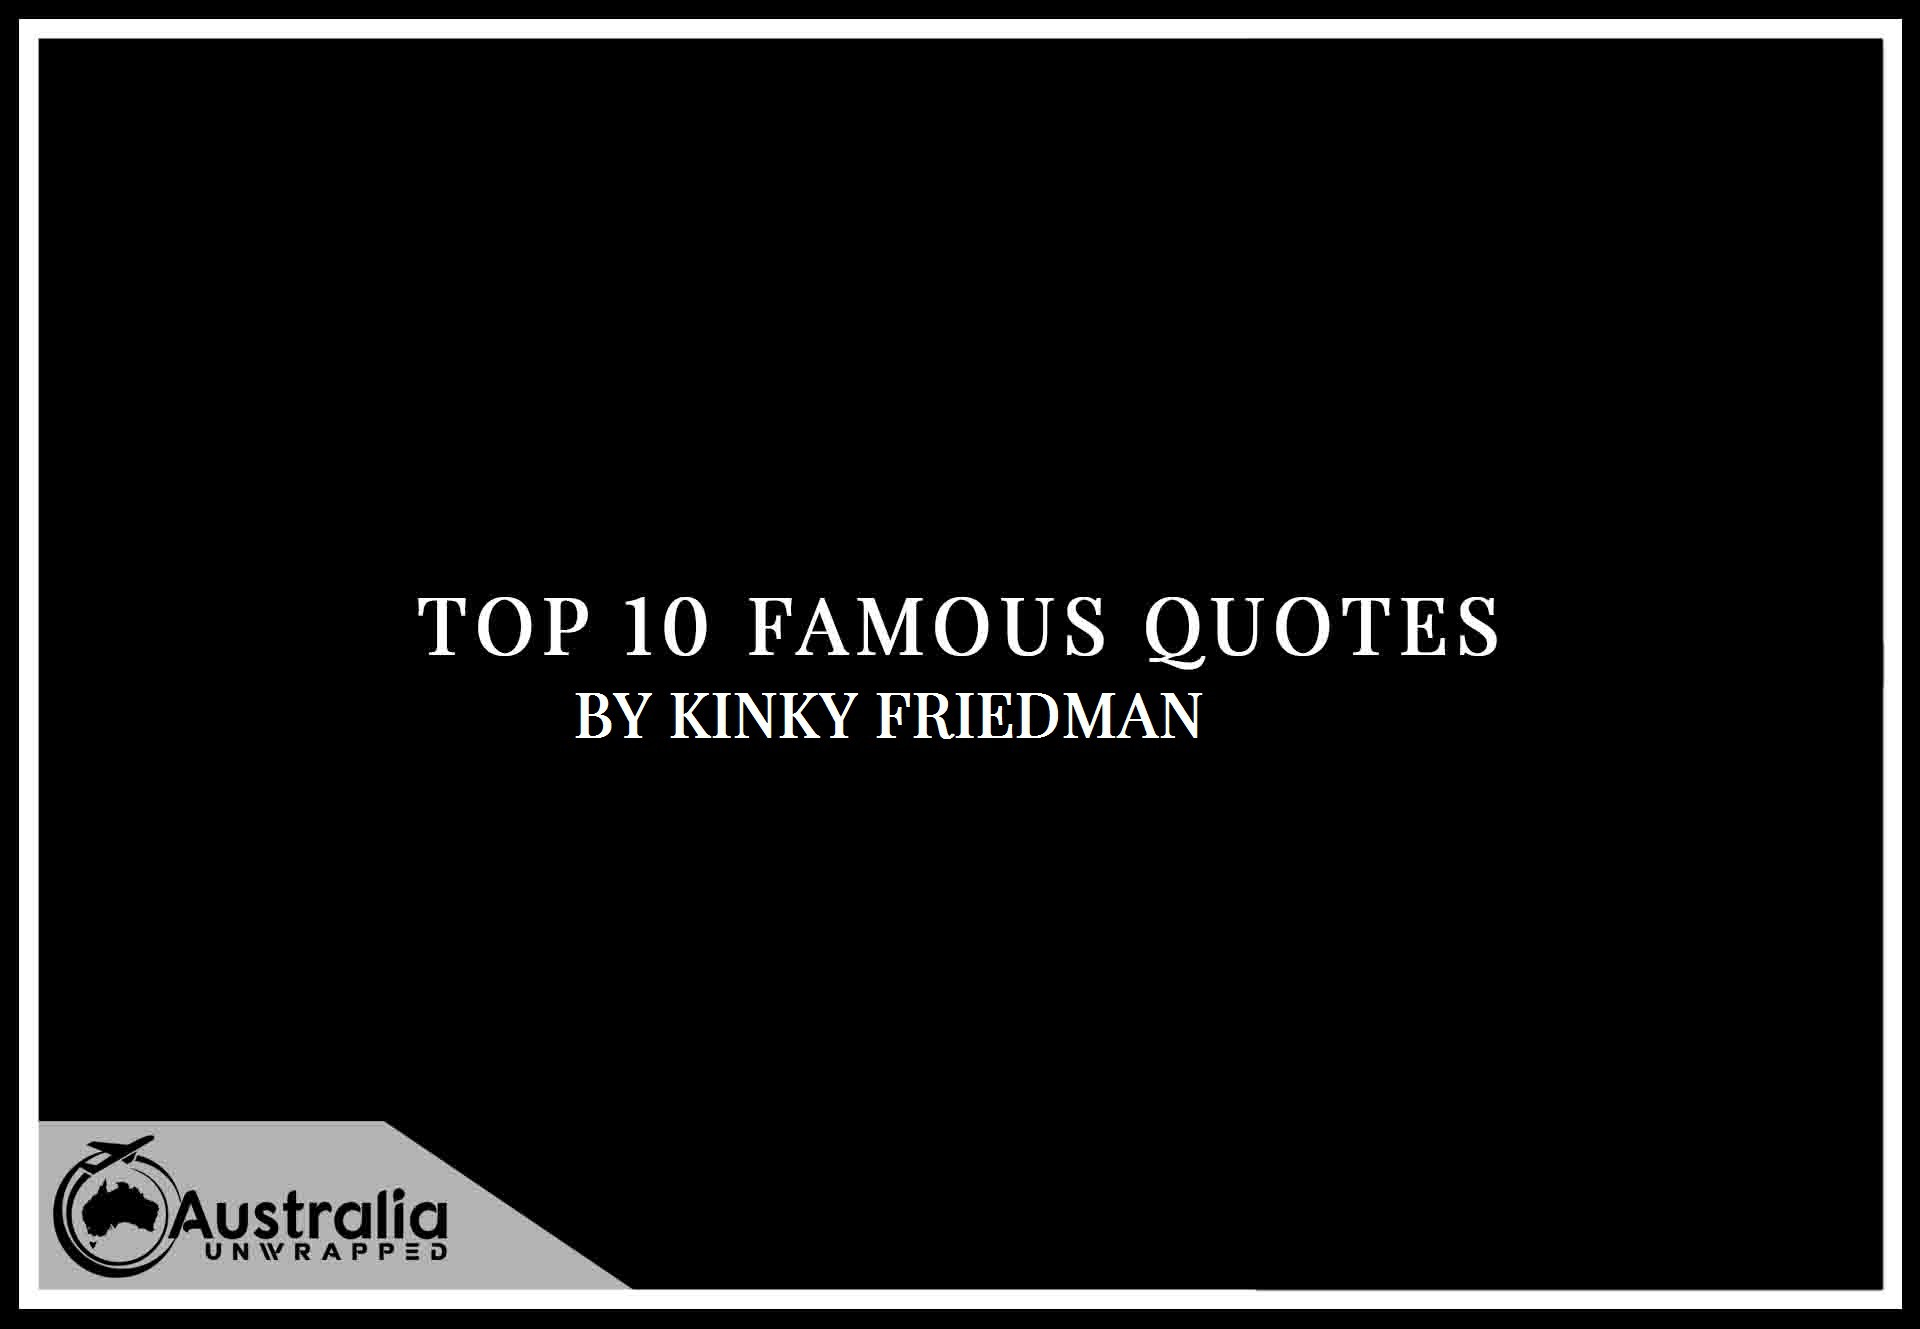 Kinky Friedman's Top 10 Popular and Famous Quotes